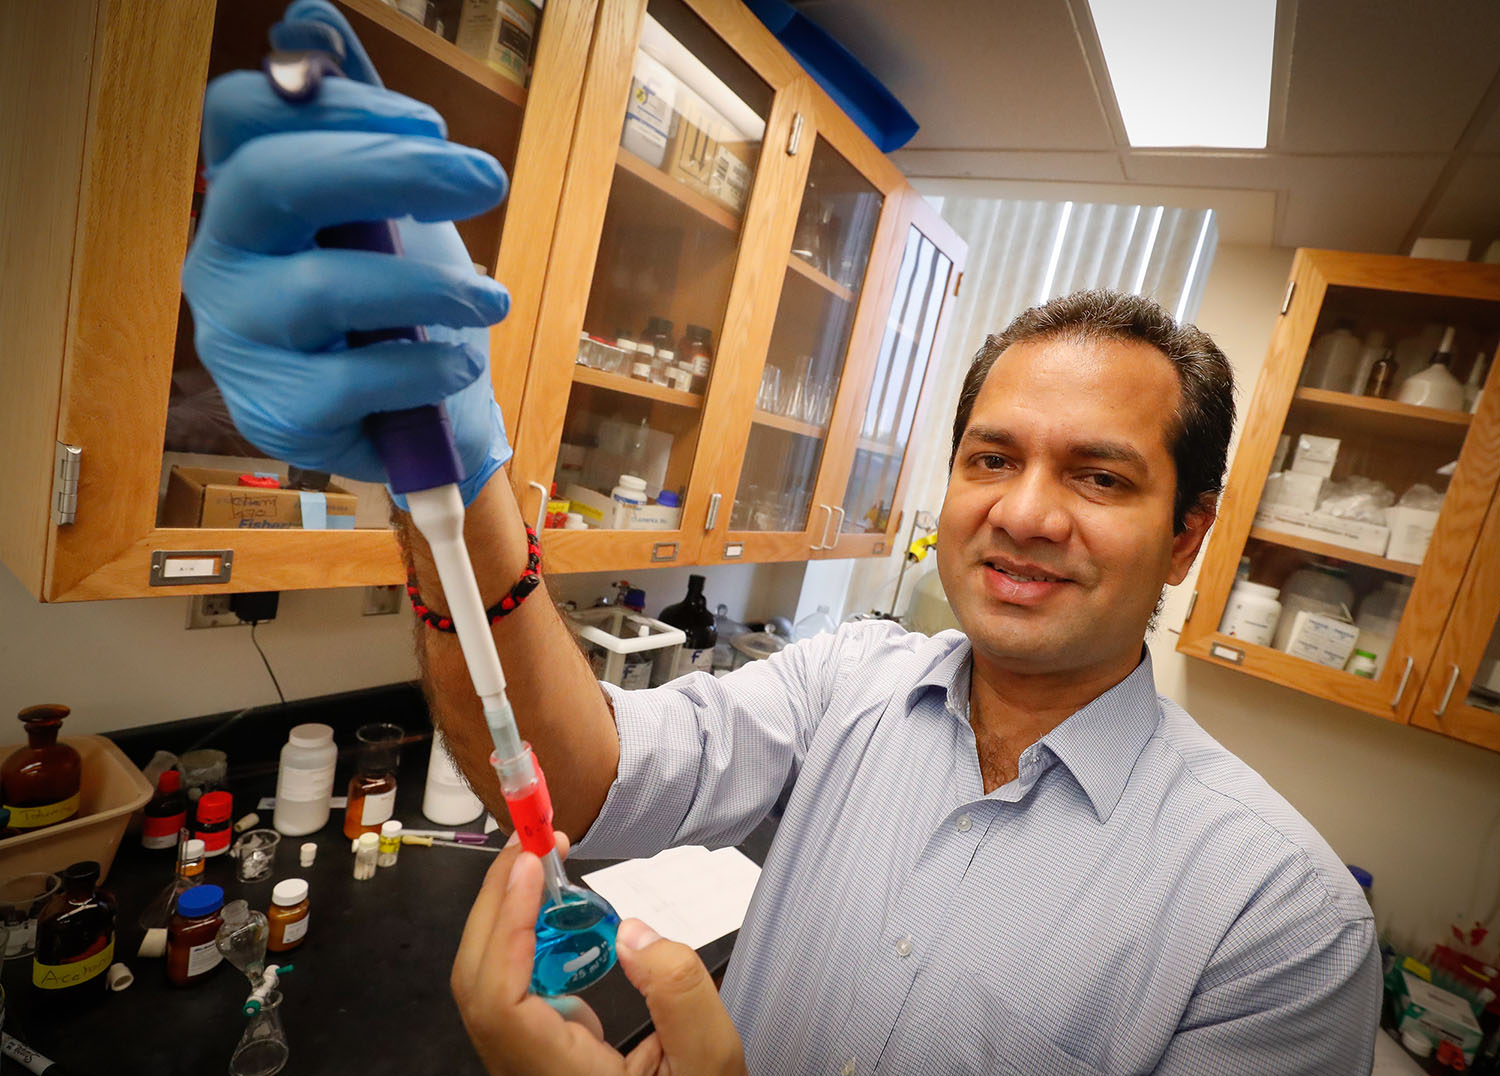 UNK associate chemistry professor Mahesh Pattabiraman is researching photoactive dyes that generate disinfecting molecules when they're exposed to light. The goal is to develop an effective and safe disinfectant for prosthetic limbs. (Photo by Corbey R. Dorsey, UNK Communications)